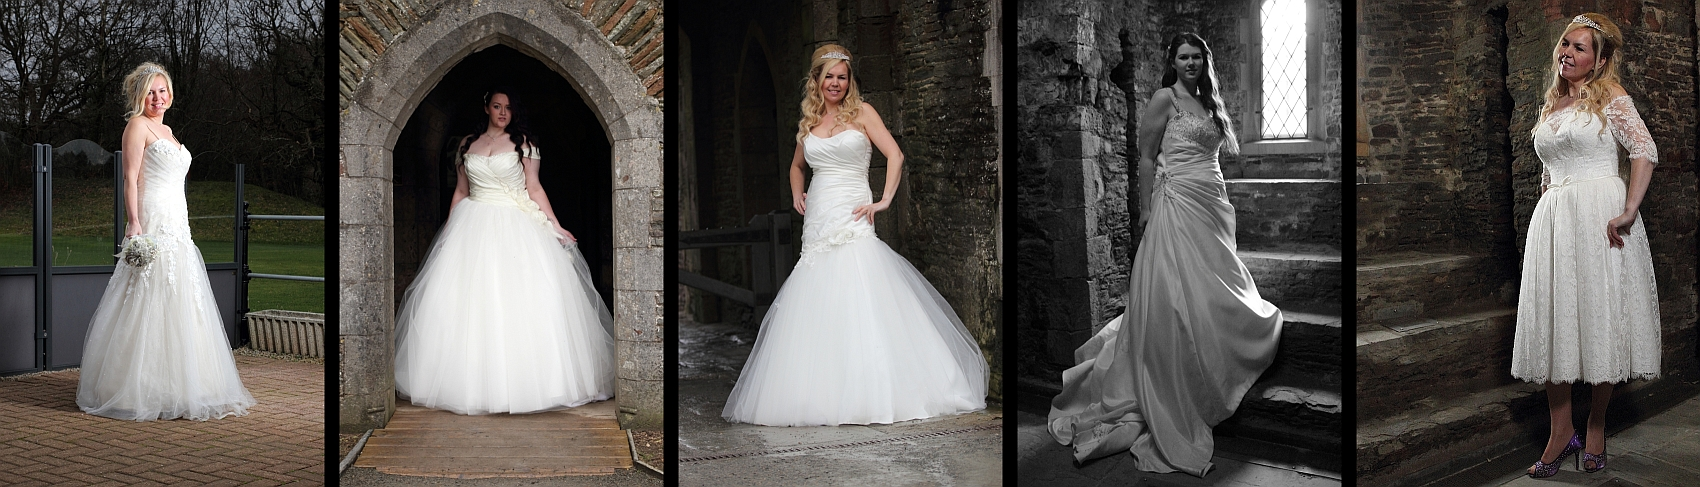 Commercial photography for Caru Brides, a Bridal Shop in Caerphilly